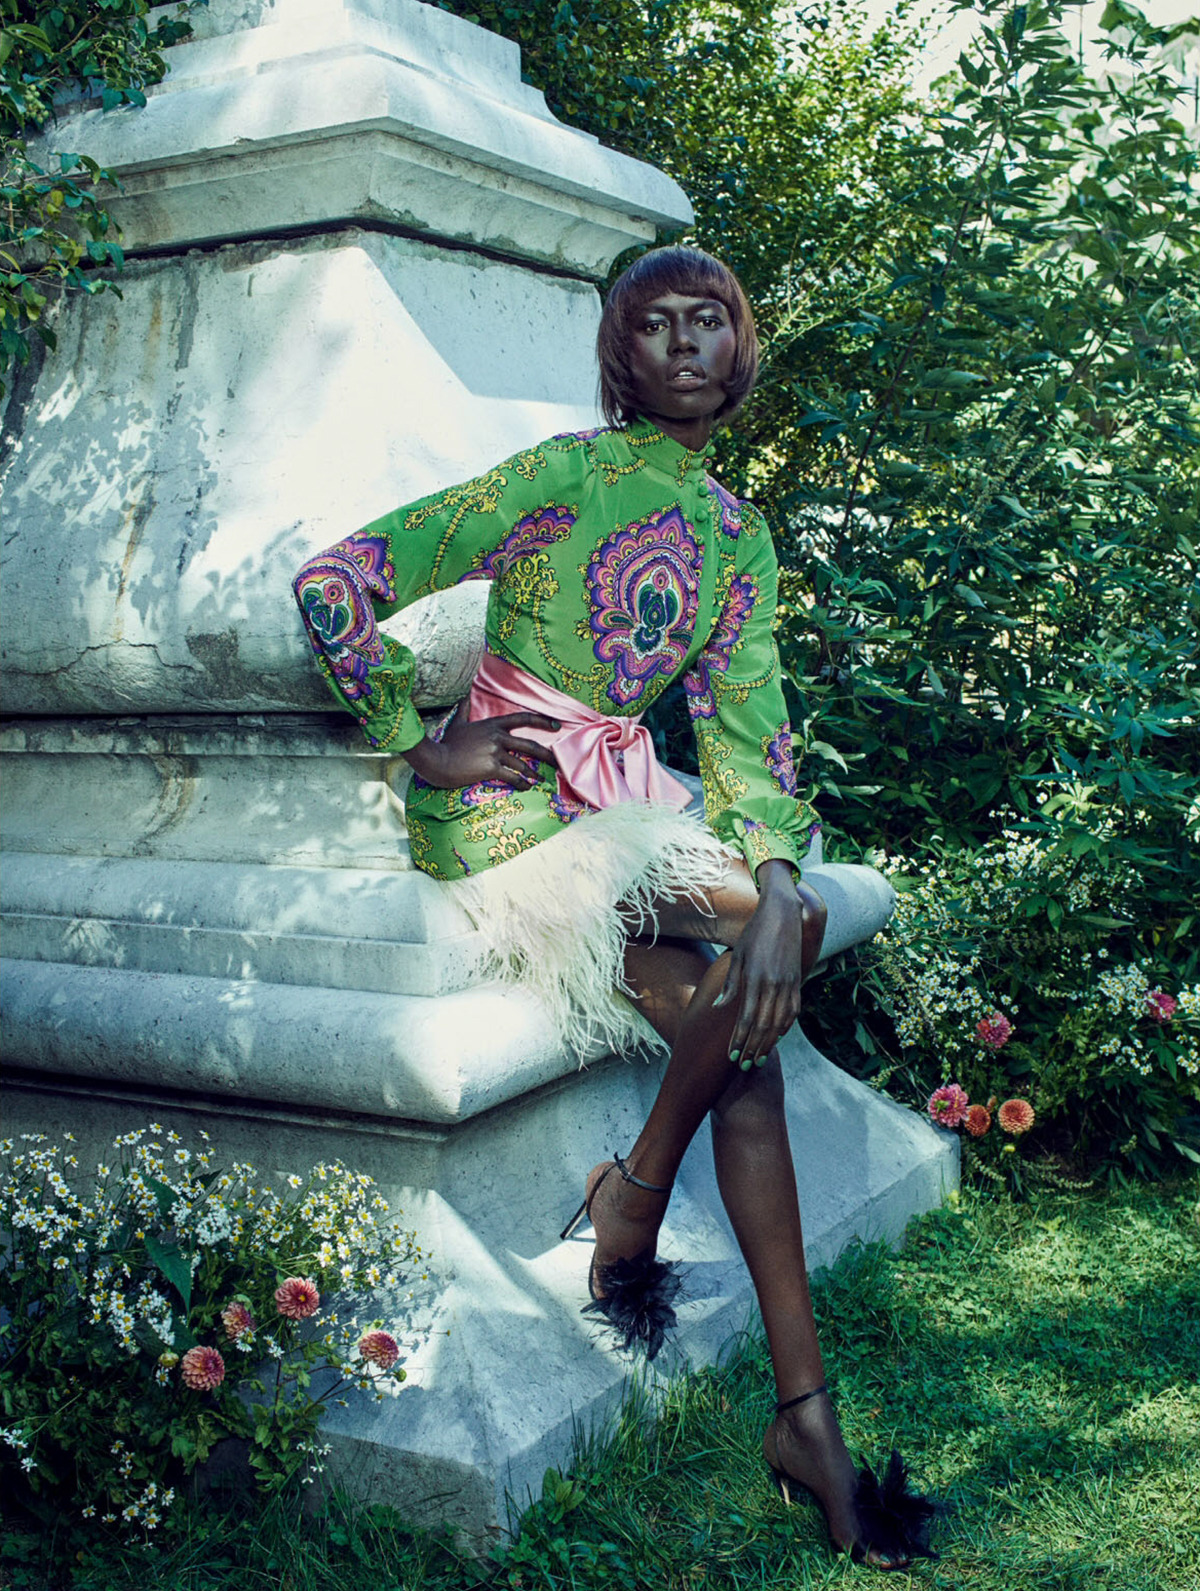 Ajak Deng Poses In A Blooming Paradise for ELLE UK